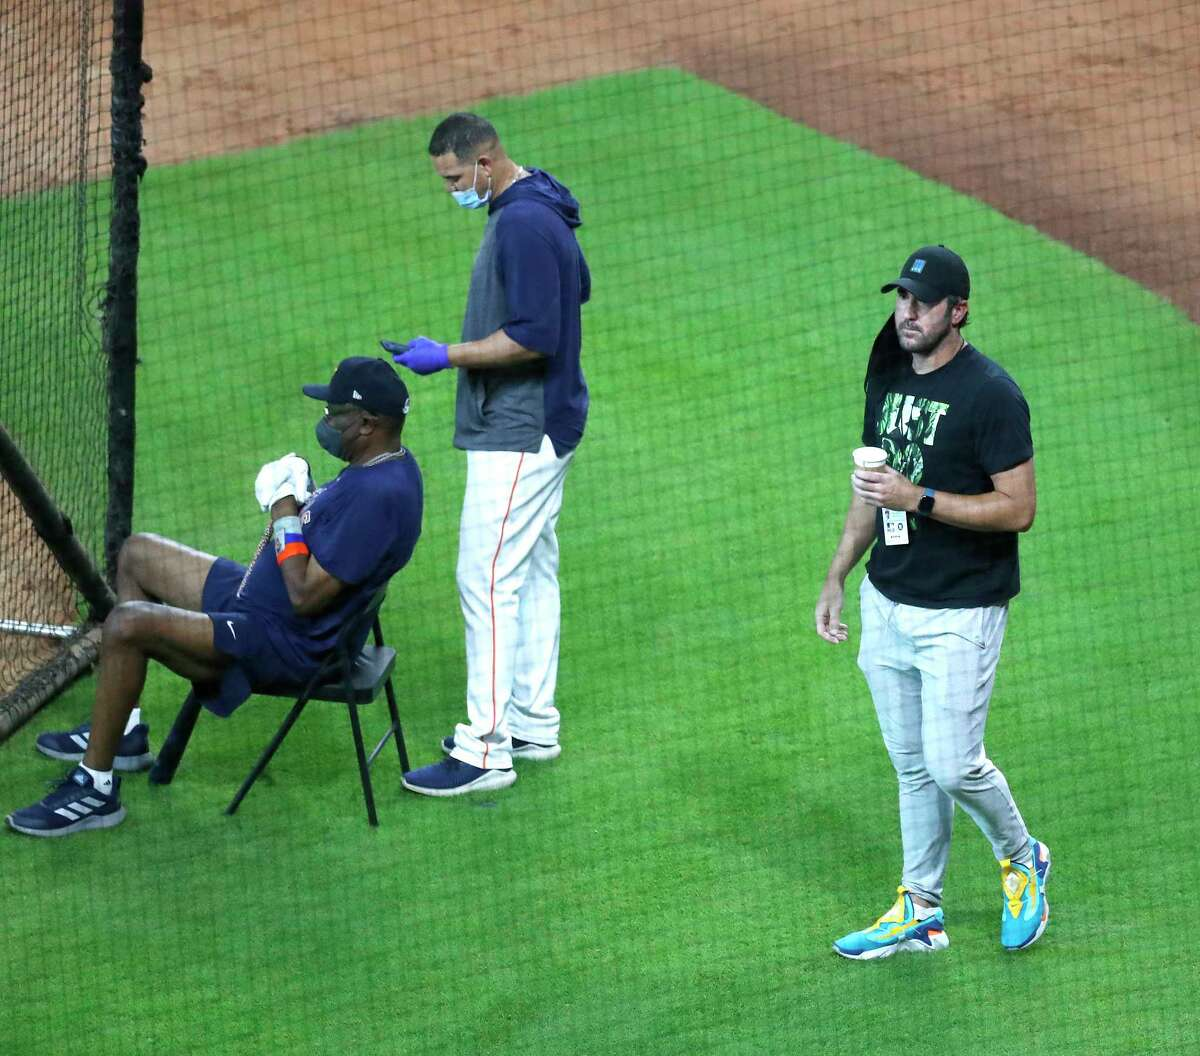 Houston Astros pitcher Justin Verlander wearing a mask and street clothes watches a live batting practice session during the Astros summer camp at Minute Maid Park, Tuesday, July 7, 2020, in Houston.